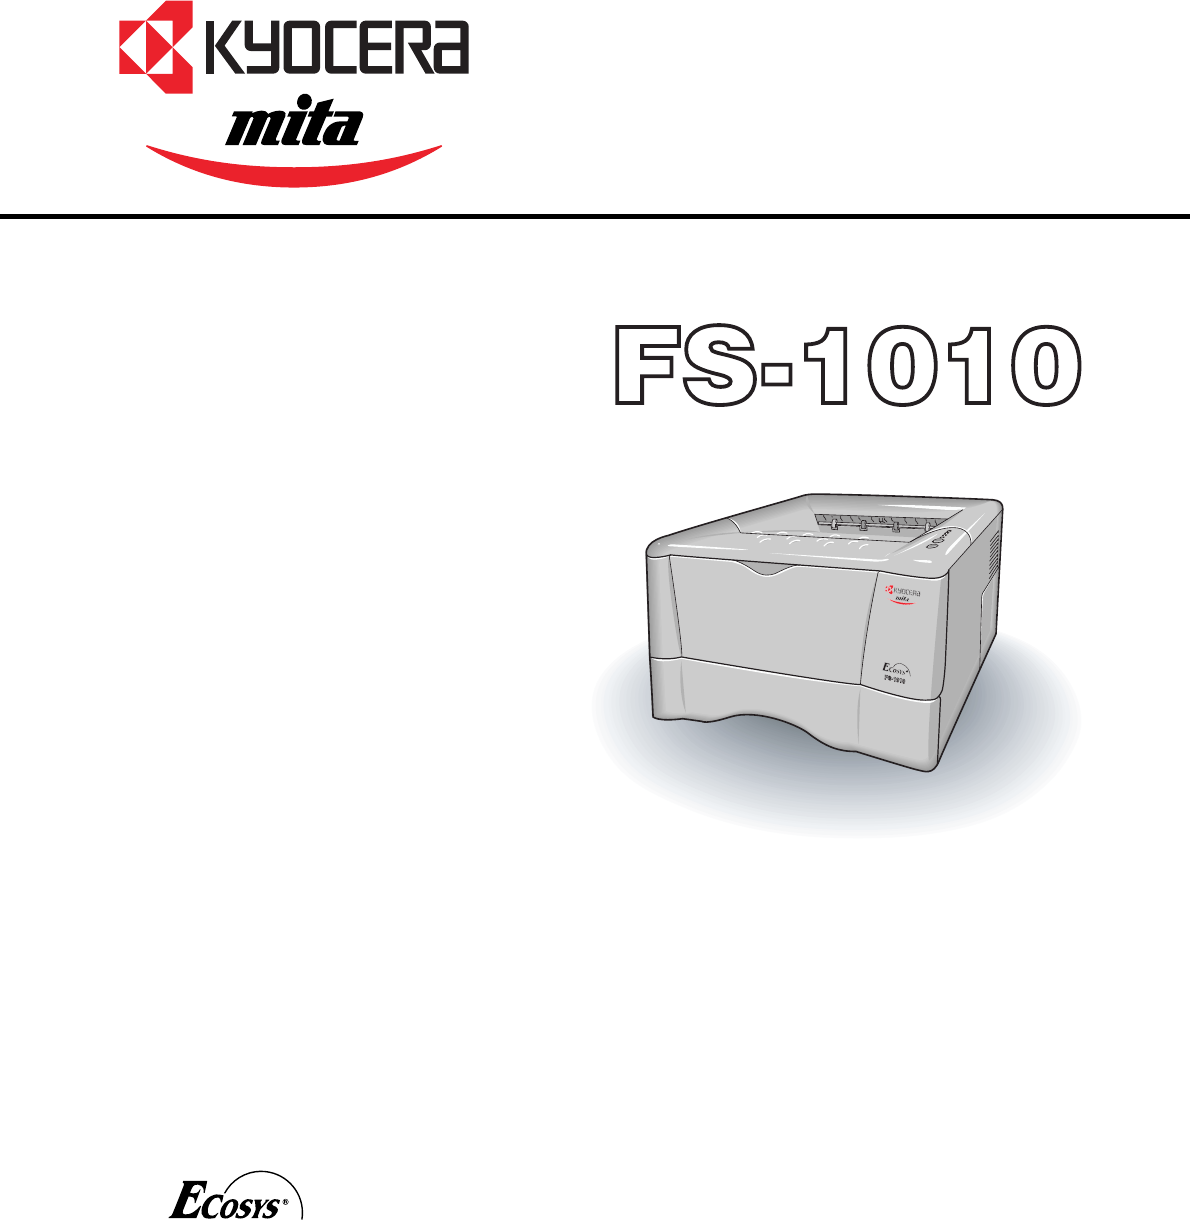 kyocera printer fs 1010 user guide manualsonline com rh office manualsonline com kyocera mita fs-1010 repair manual Kyocera Mita 1920